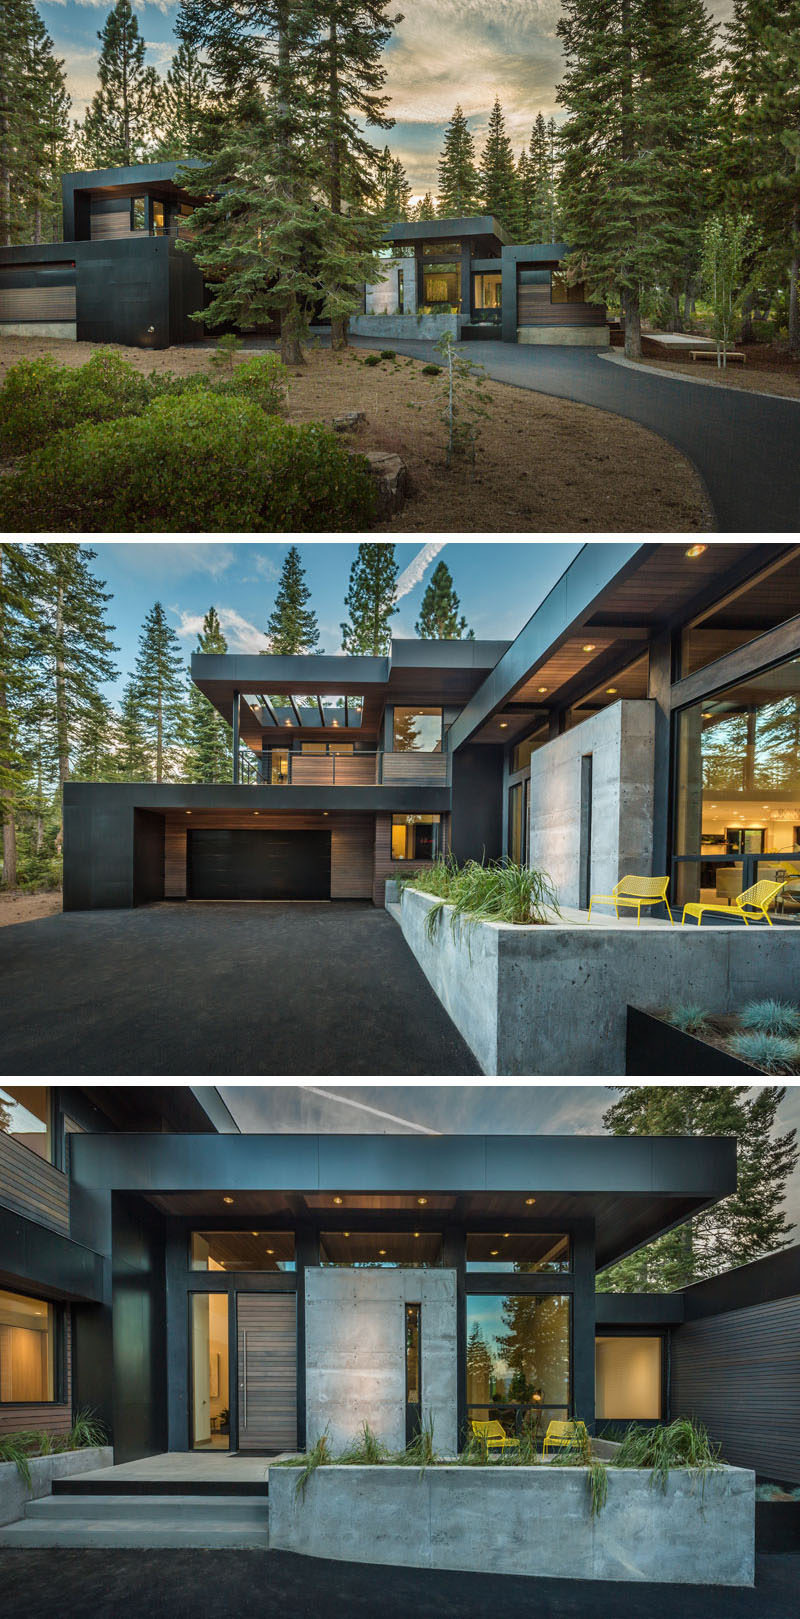 World Famous House Design Inspirational 18 Modern Houses In the forest